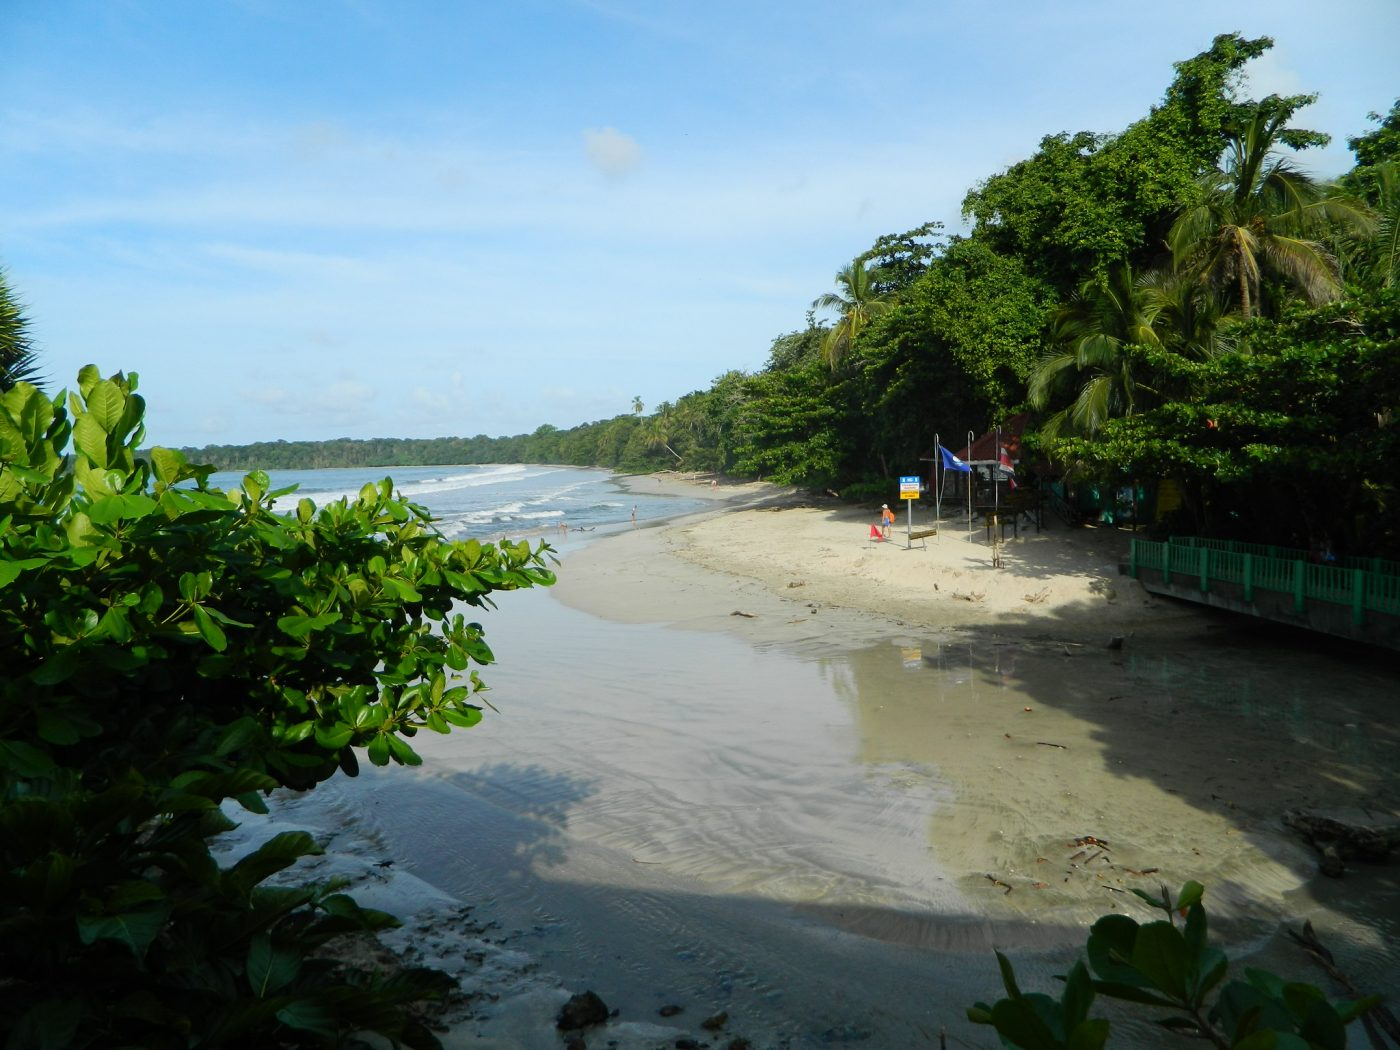 The Complete Guide to Costa Rica National Parks - Cahuita National Park